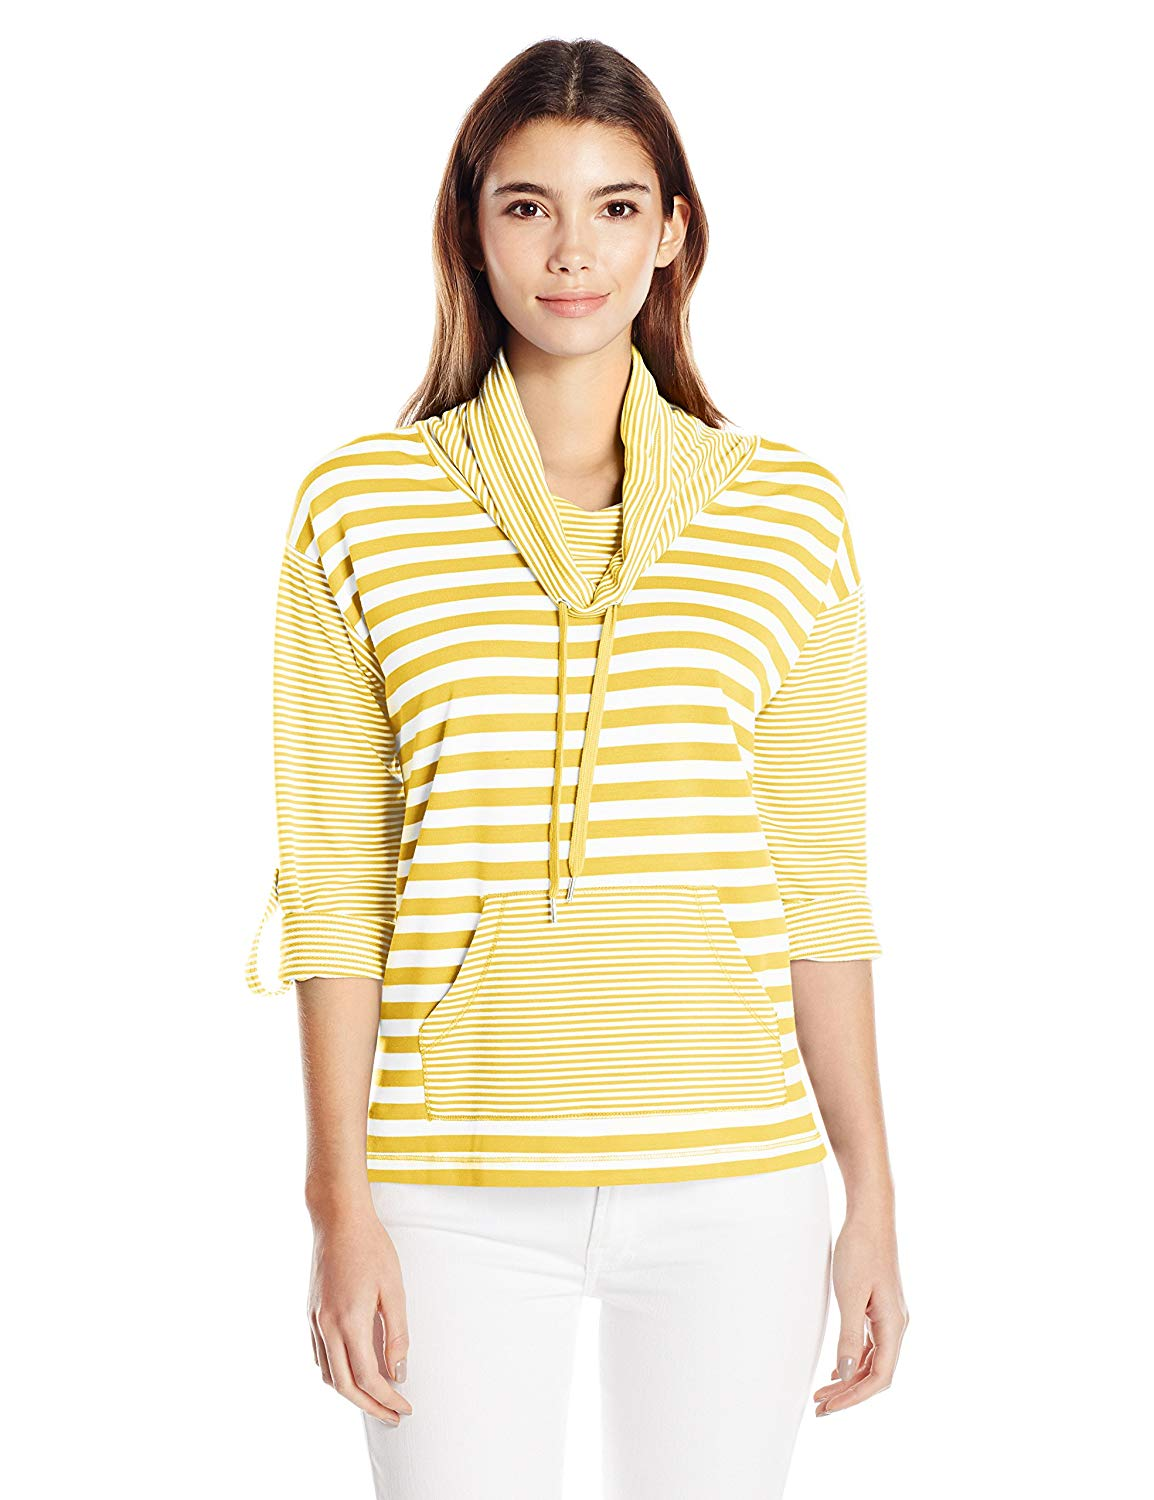 272551ea8f8 Get Quotations · Ruby Rd. Women's Cowl Neck Silky French Terry Pullover